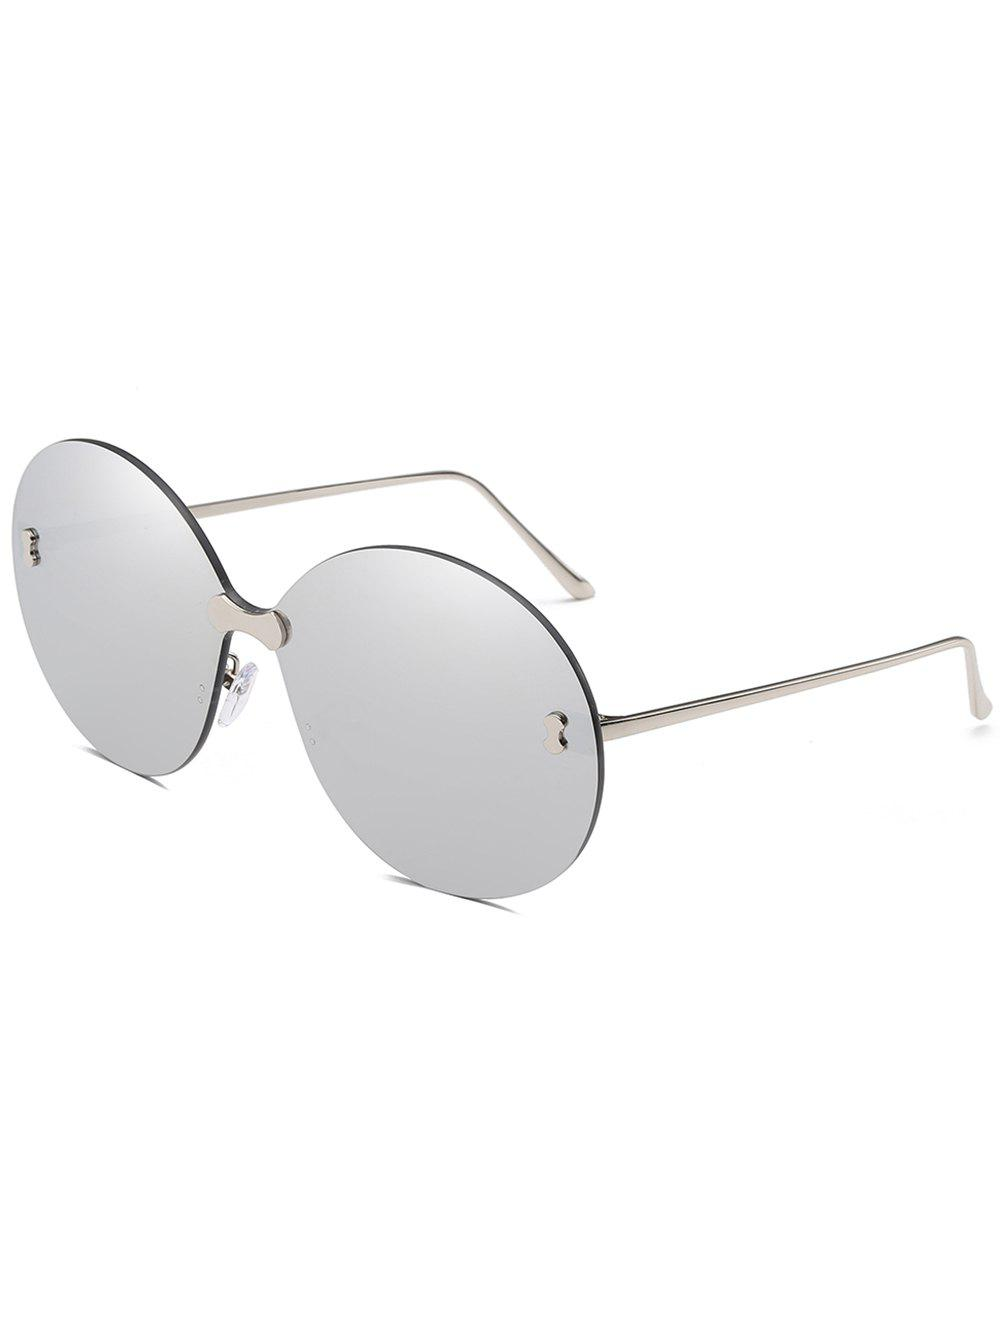 Shop Anti Fatigue Rimless Oversized Round Sunglasses